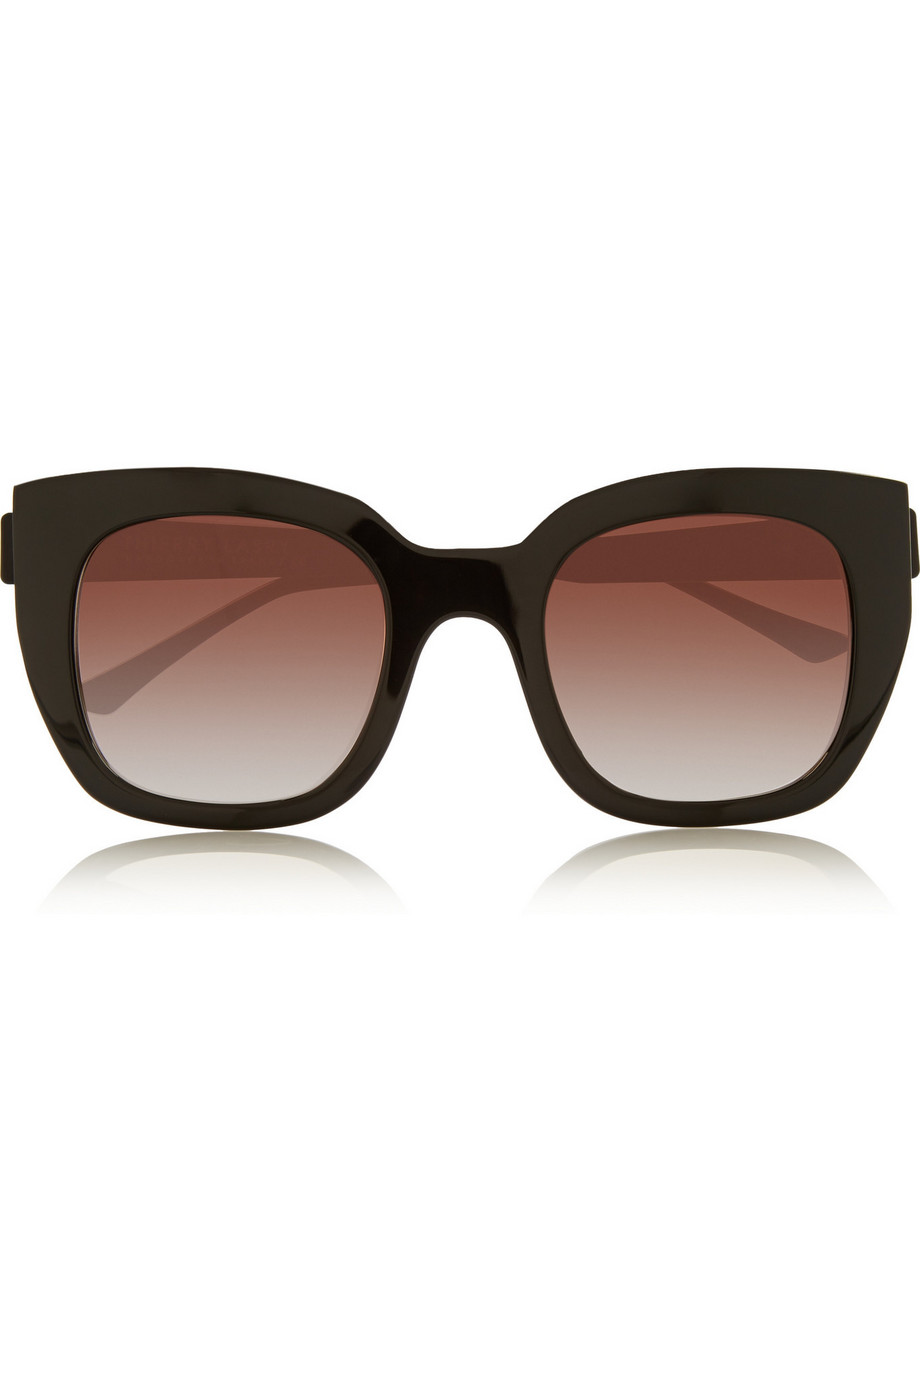 Thierry Lasry Swingy D-Frame Acetate Sunglasses, Black, Women's, Size: One Size